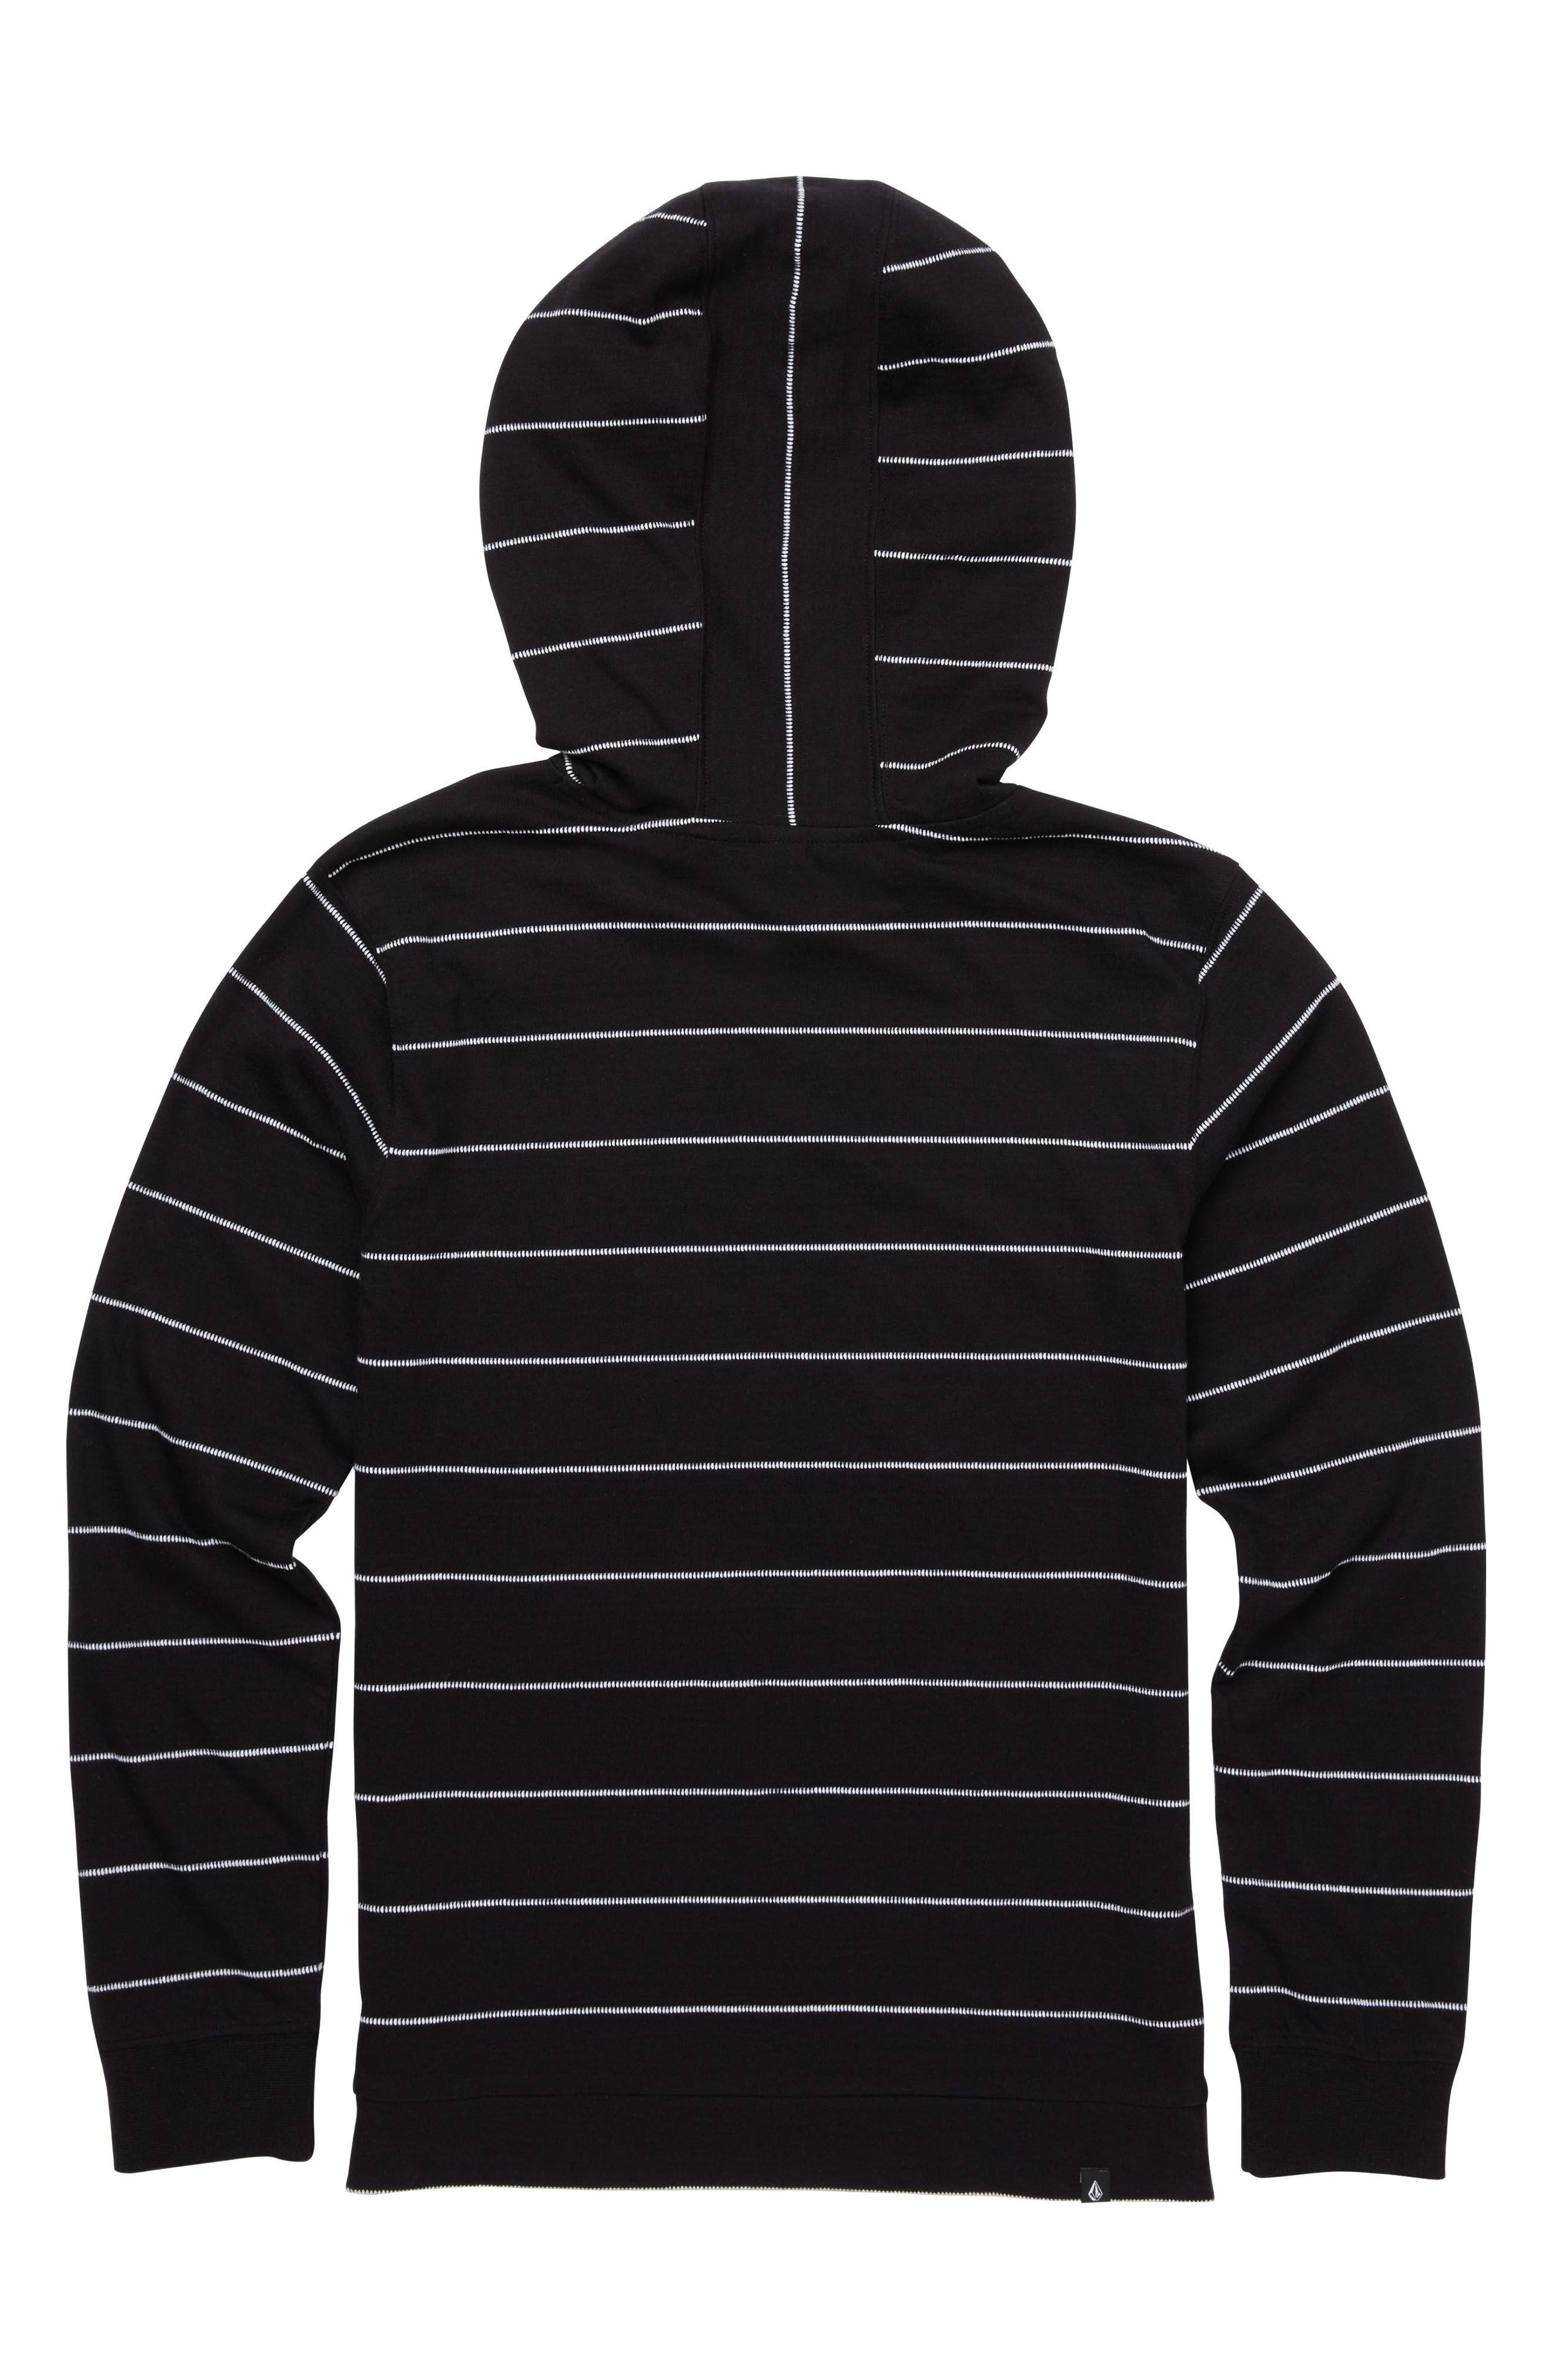 Wallace Hoodie,                             Alternate thumbnail 2, color,                             001